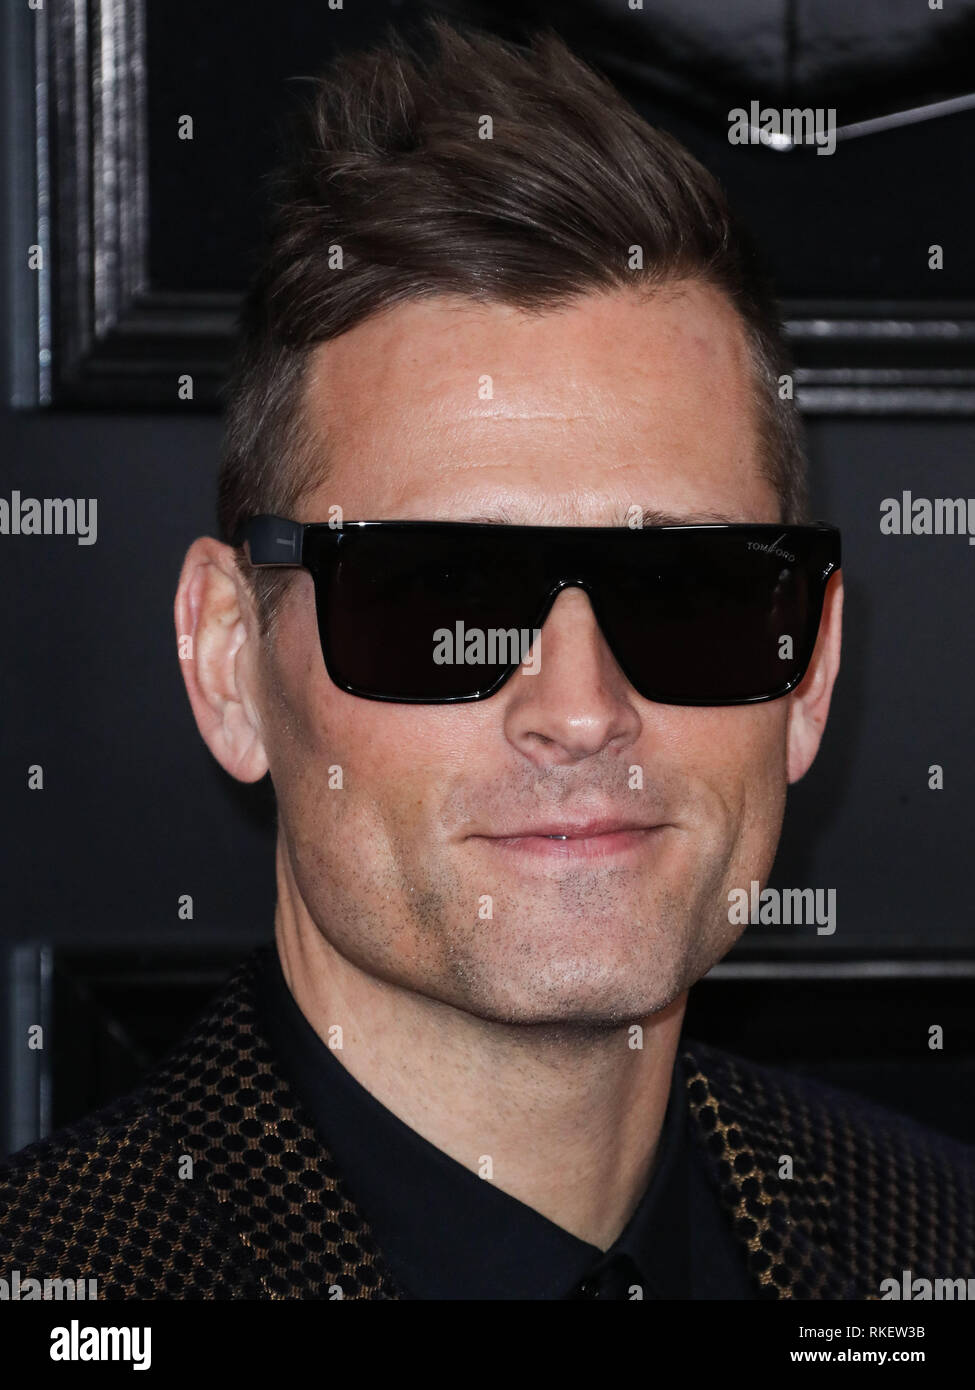 Los Angeles, United States. 10th Feb, 2019.LOS ANGELES, CA, USA - FEBRUARY 10: Kaskade arrives at the 61st Annual GRAMMY Awards held at Staples Center on February 10, 2019 in Los Angeles, California, United States. (Photo by Xavier Collin/Image Press Agency) Credit: Image Press Agency/Alamy Live News Stock Photo